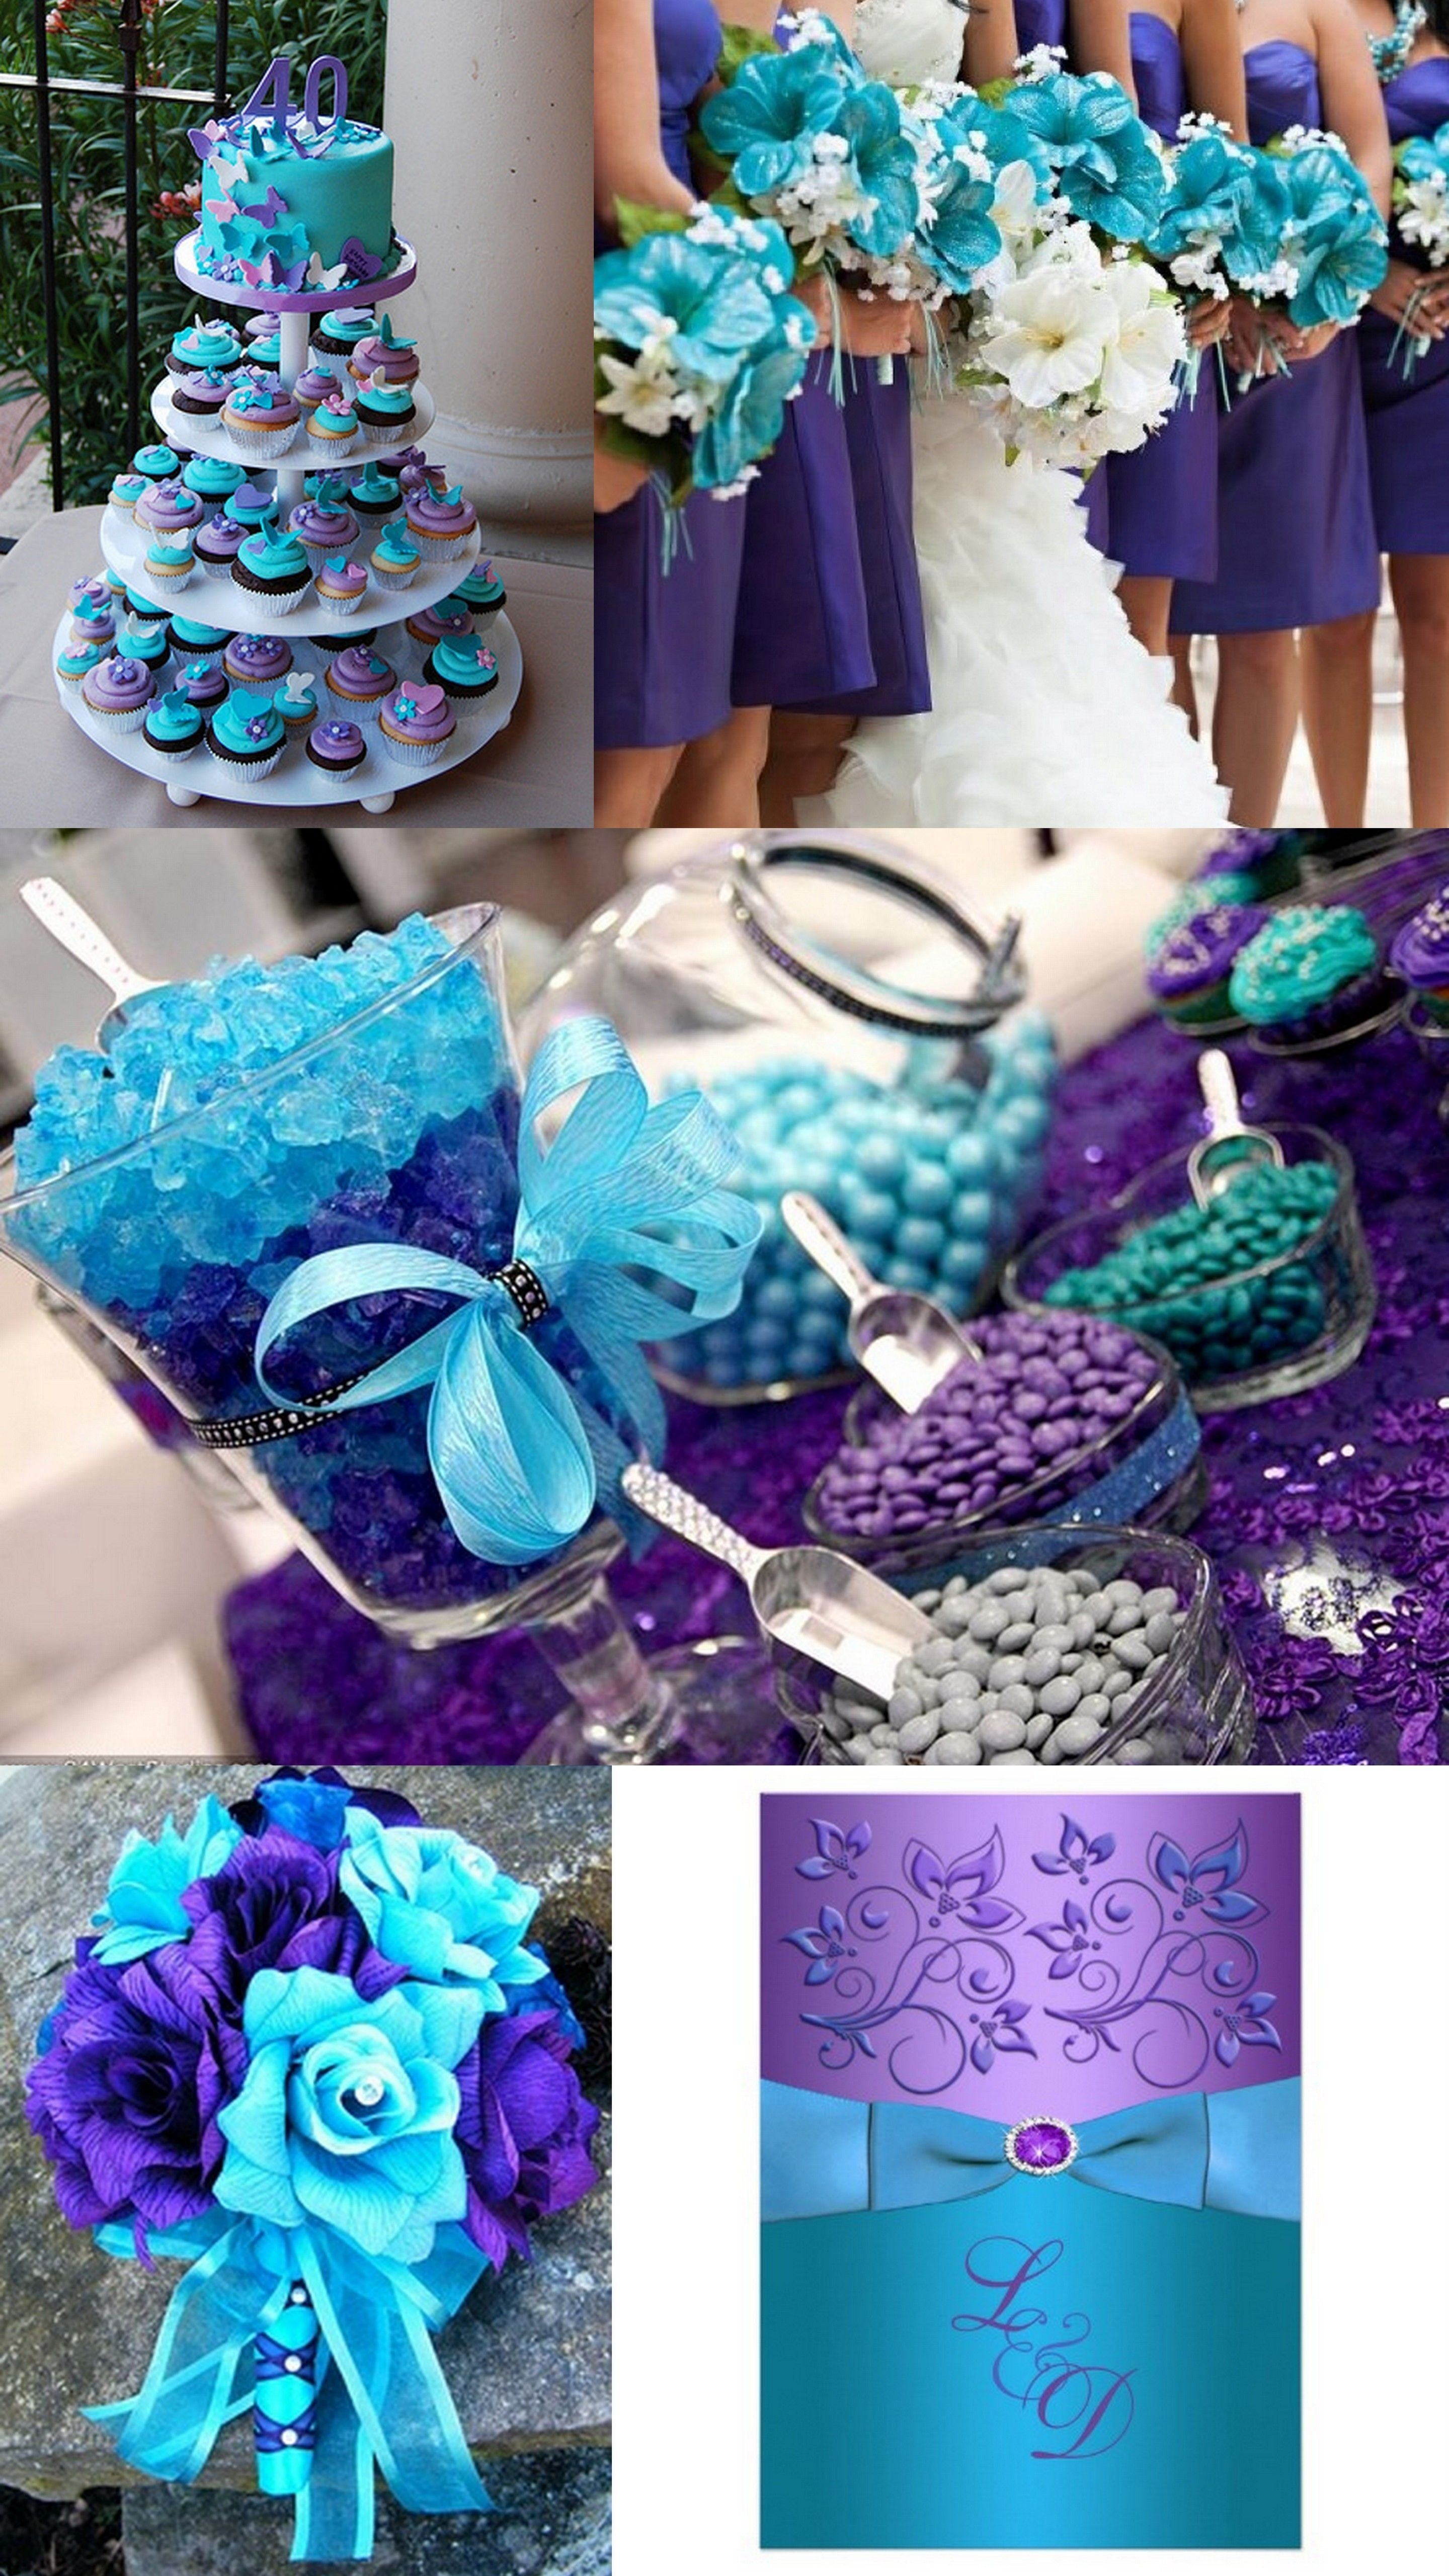 10 Pretty Teal And Purple Wedding Ideas a9 event space turquoise weddings purple wedding and bright colours 3 2020